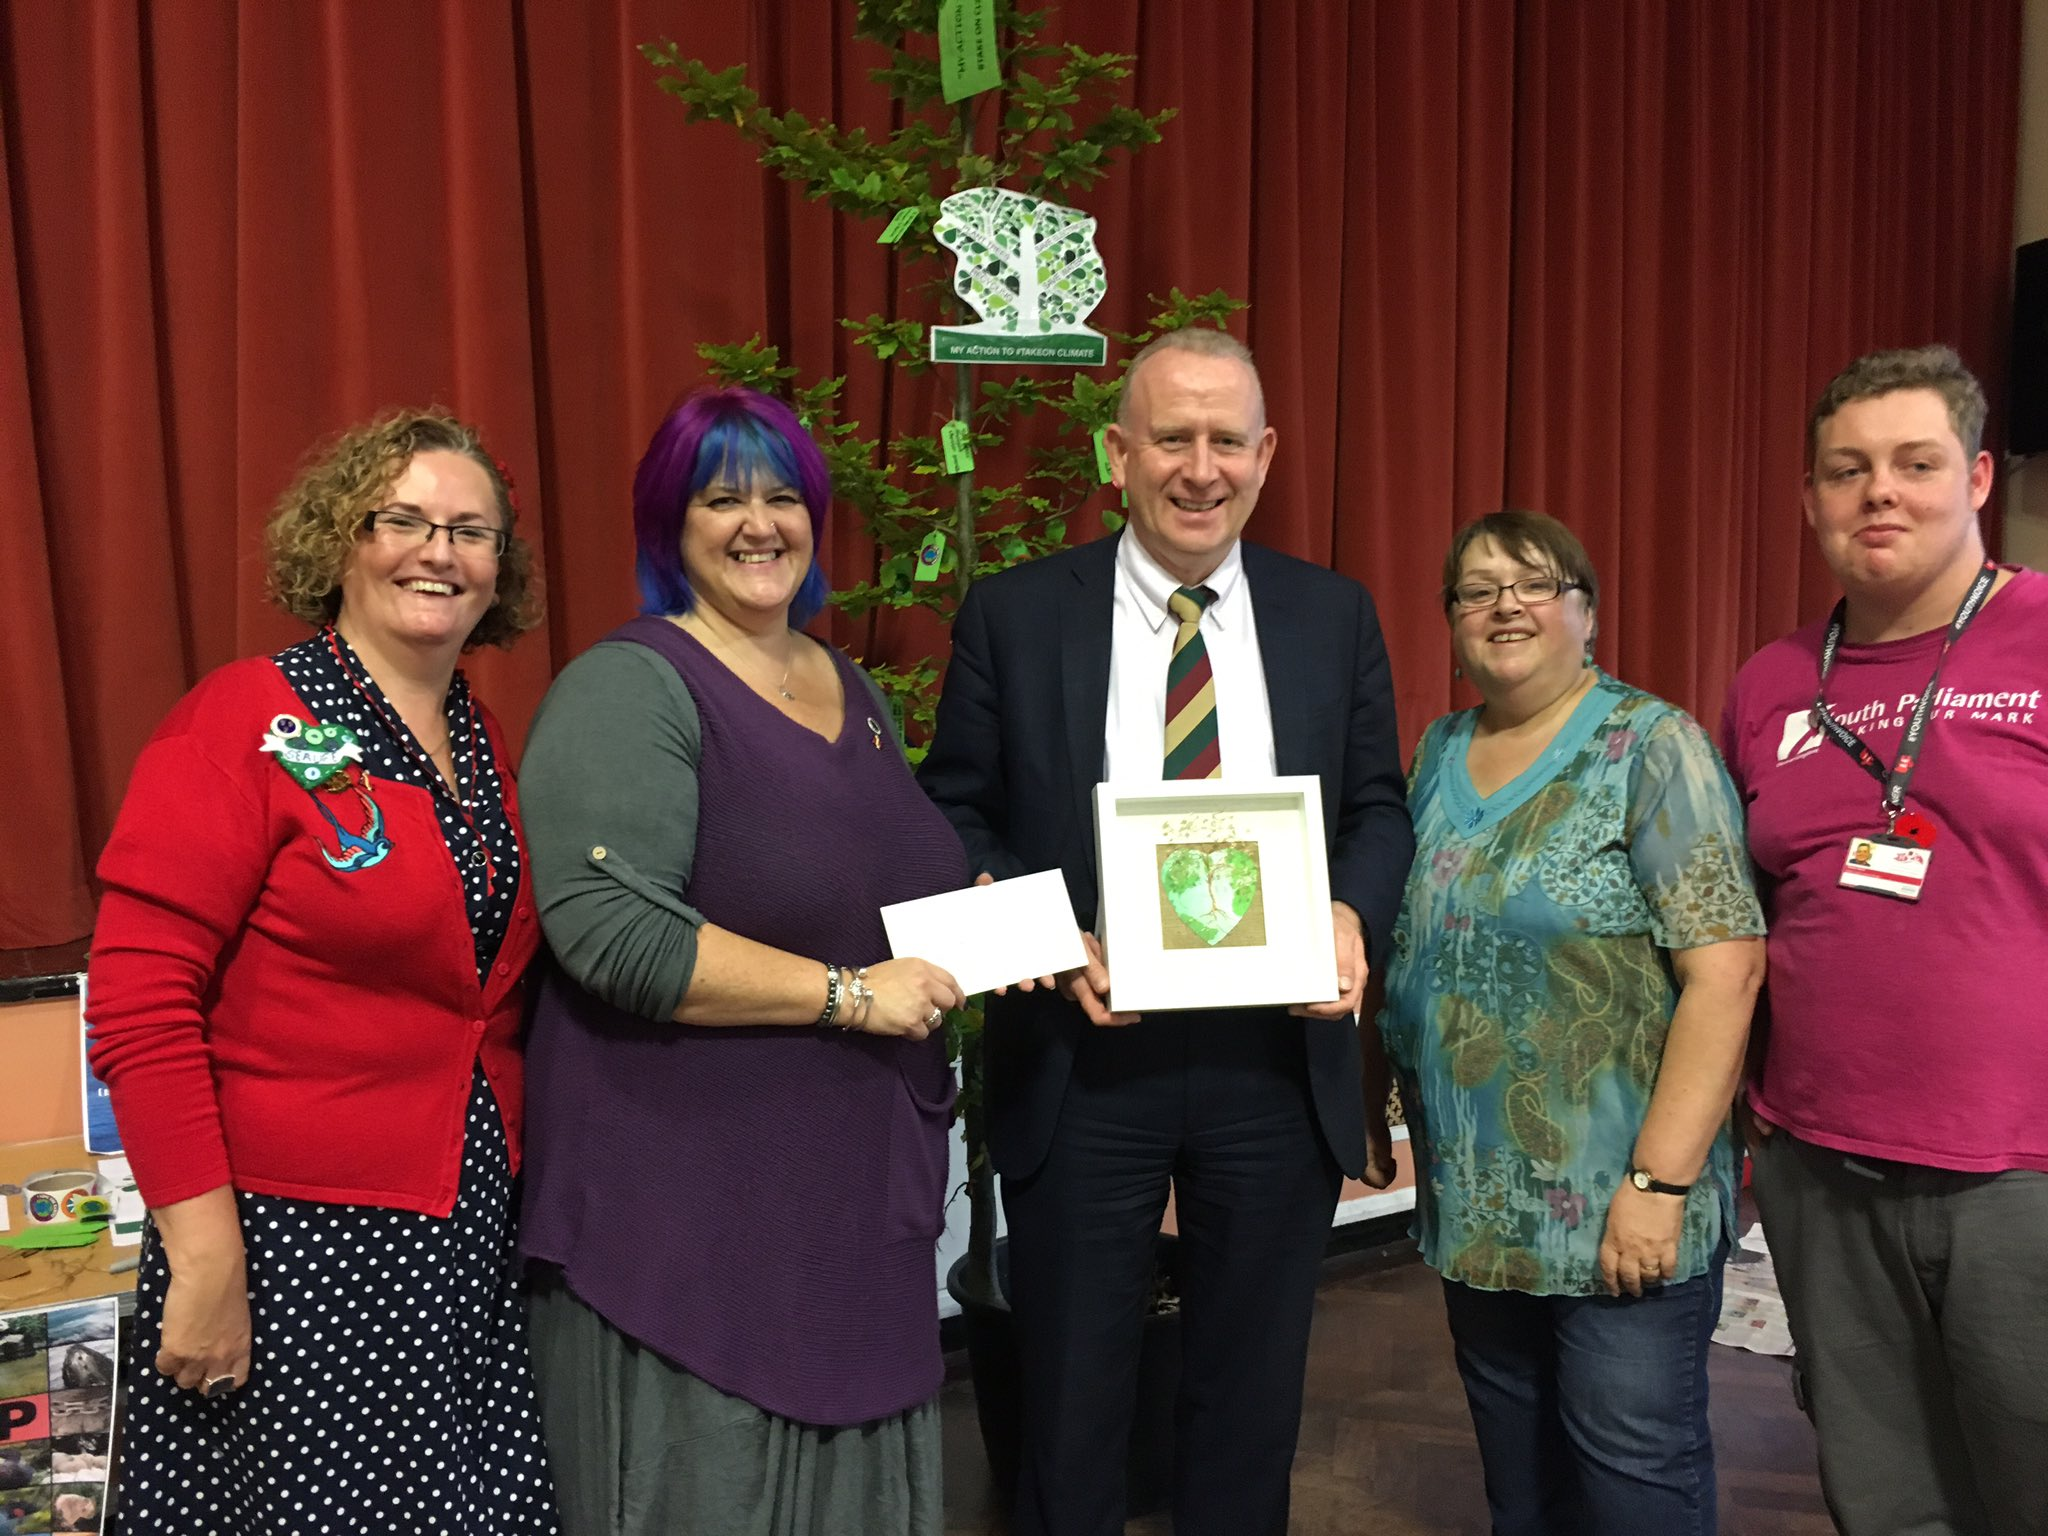 @RuncornWI @TheCCoalition @WomensInstitute @christian_aid thank you for inviting me to your event, look forward to the next one. https://t.co/2Ge4o9tXSA